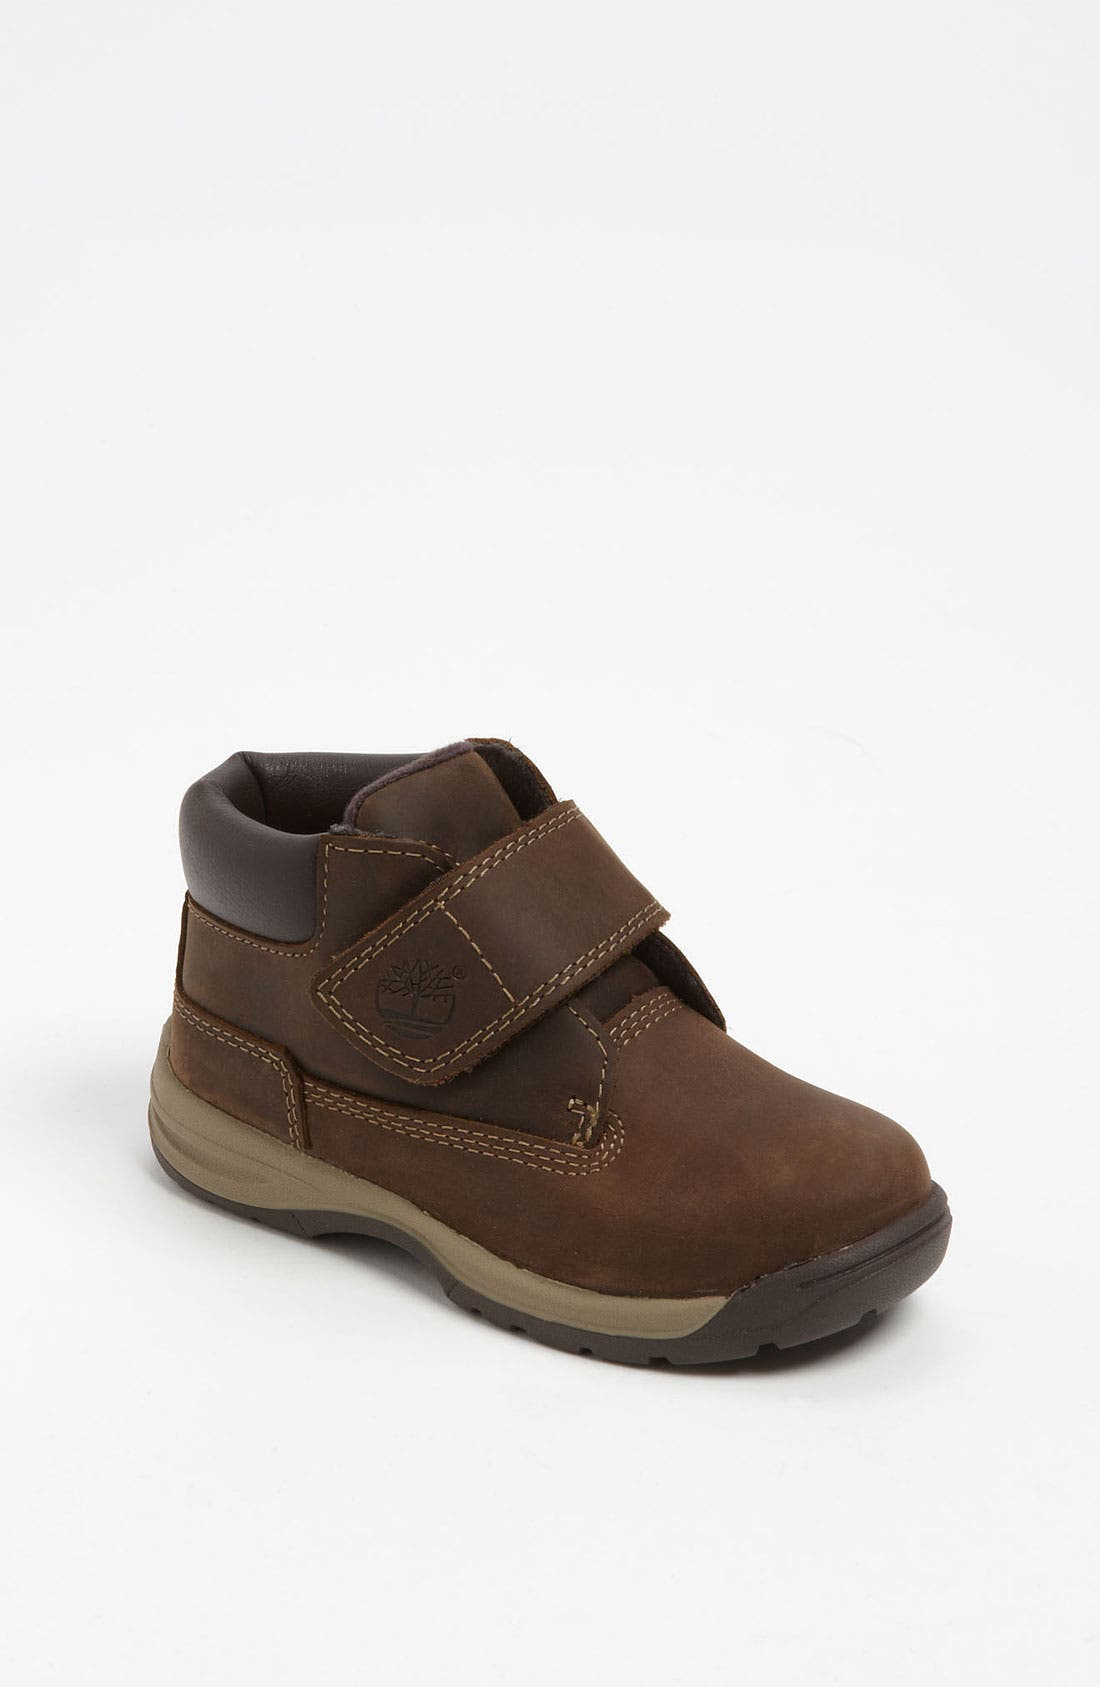 Main Image - Timberland Earthkeepers® 'Timber Tykes' Boot (Walker & Toddler)